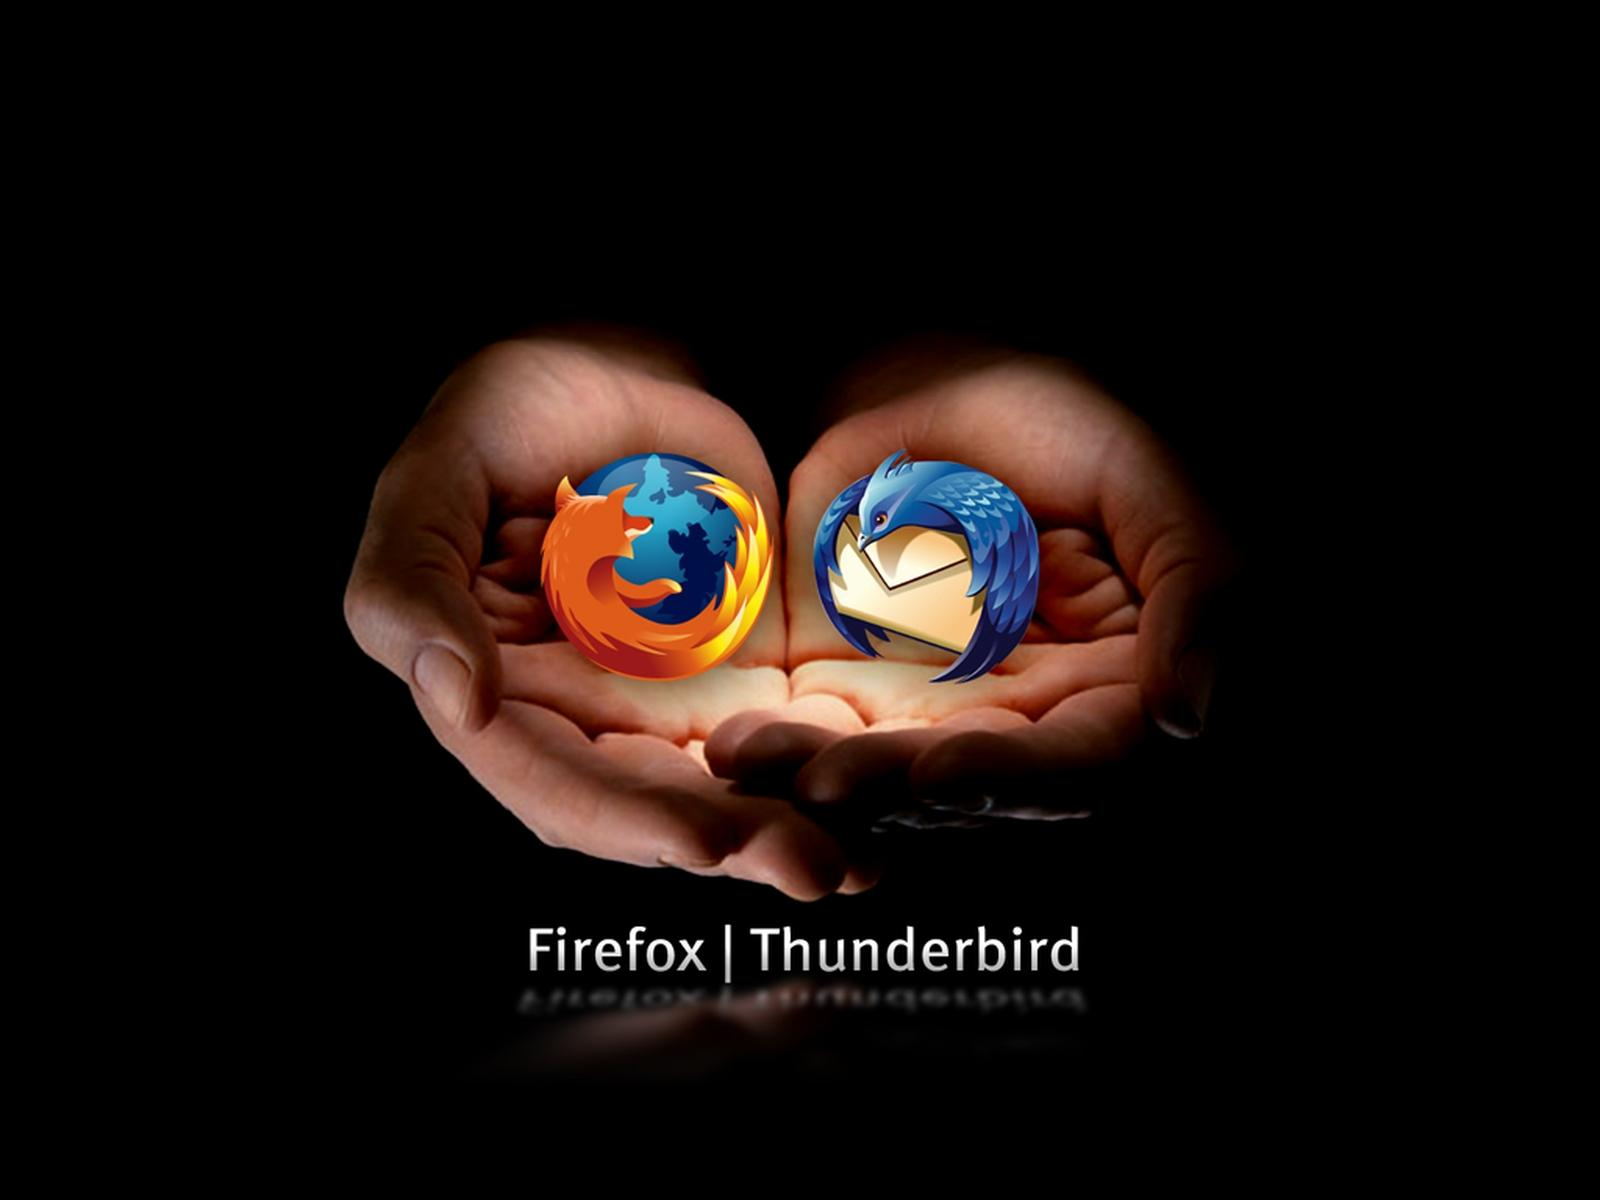 Firefox Thunderbird Wallpapers HD Wallpapers 1600x1200